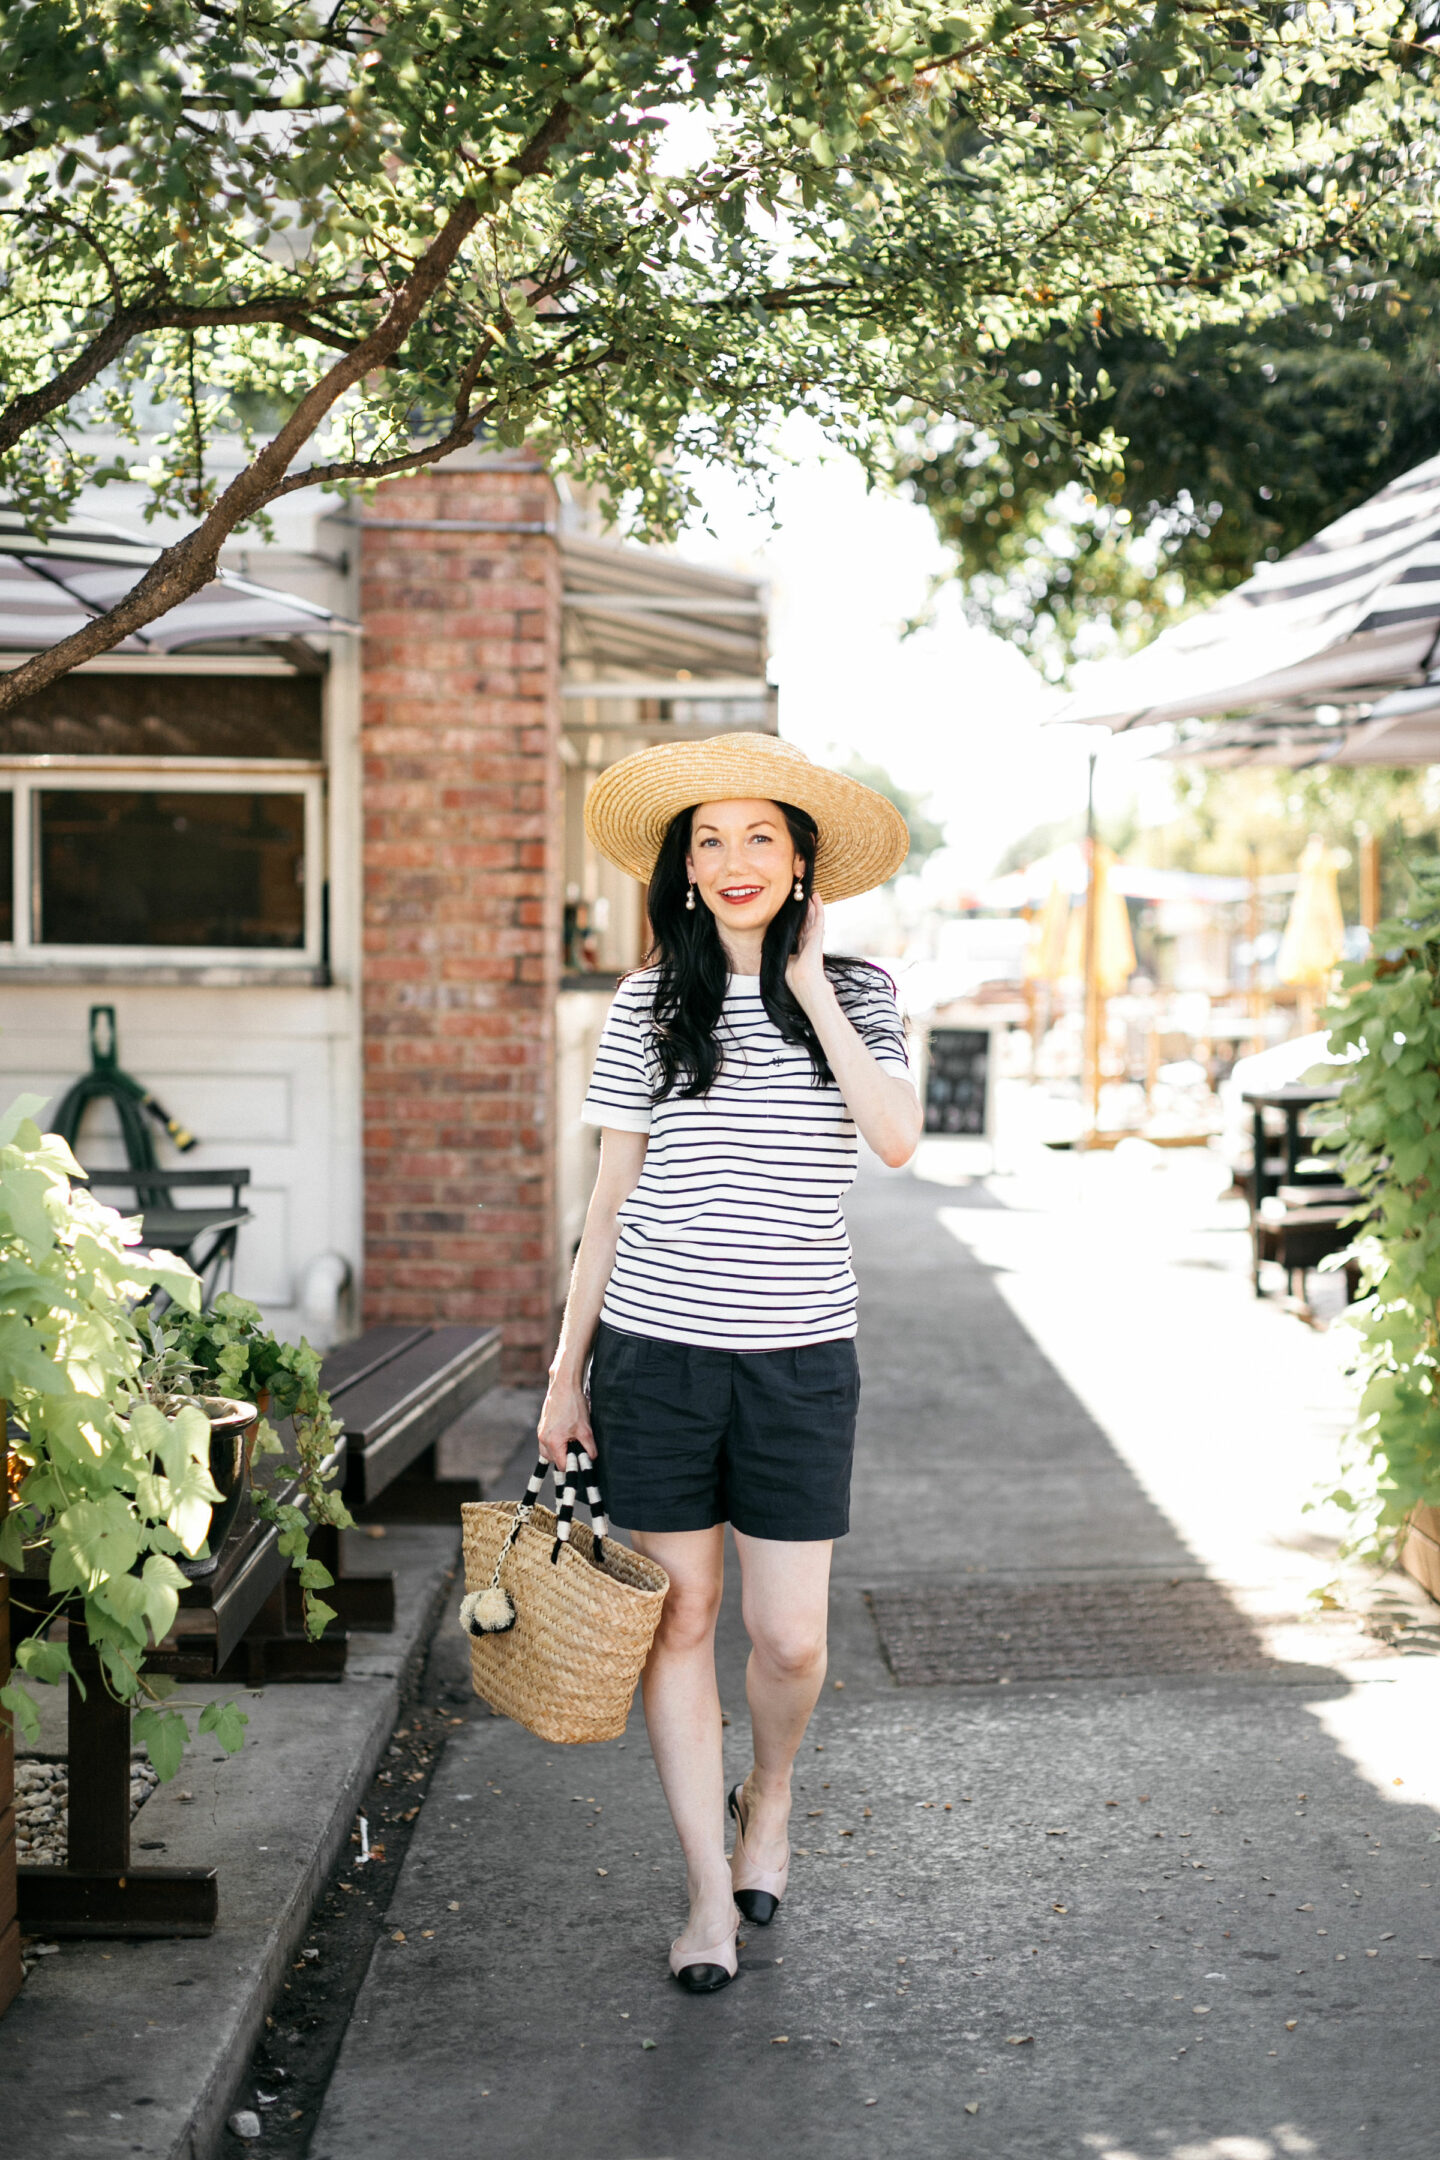 Kiel James Patrick Tee Shirt styled for Fall by top Dallas fashion blogger, Pretty Little Shoppers